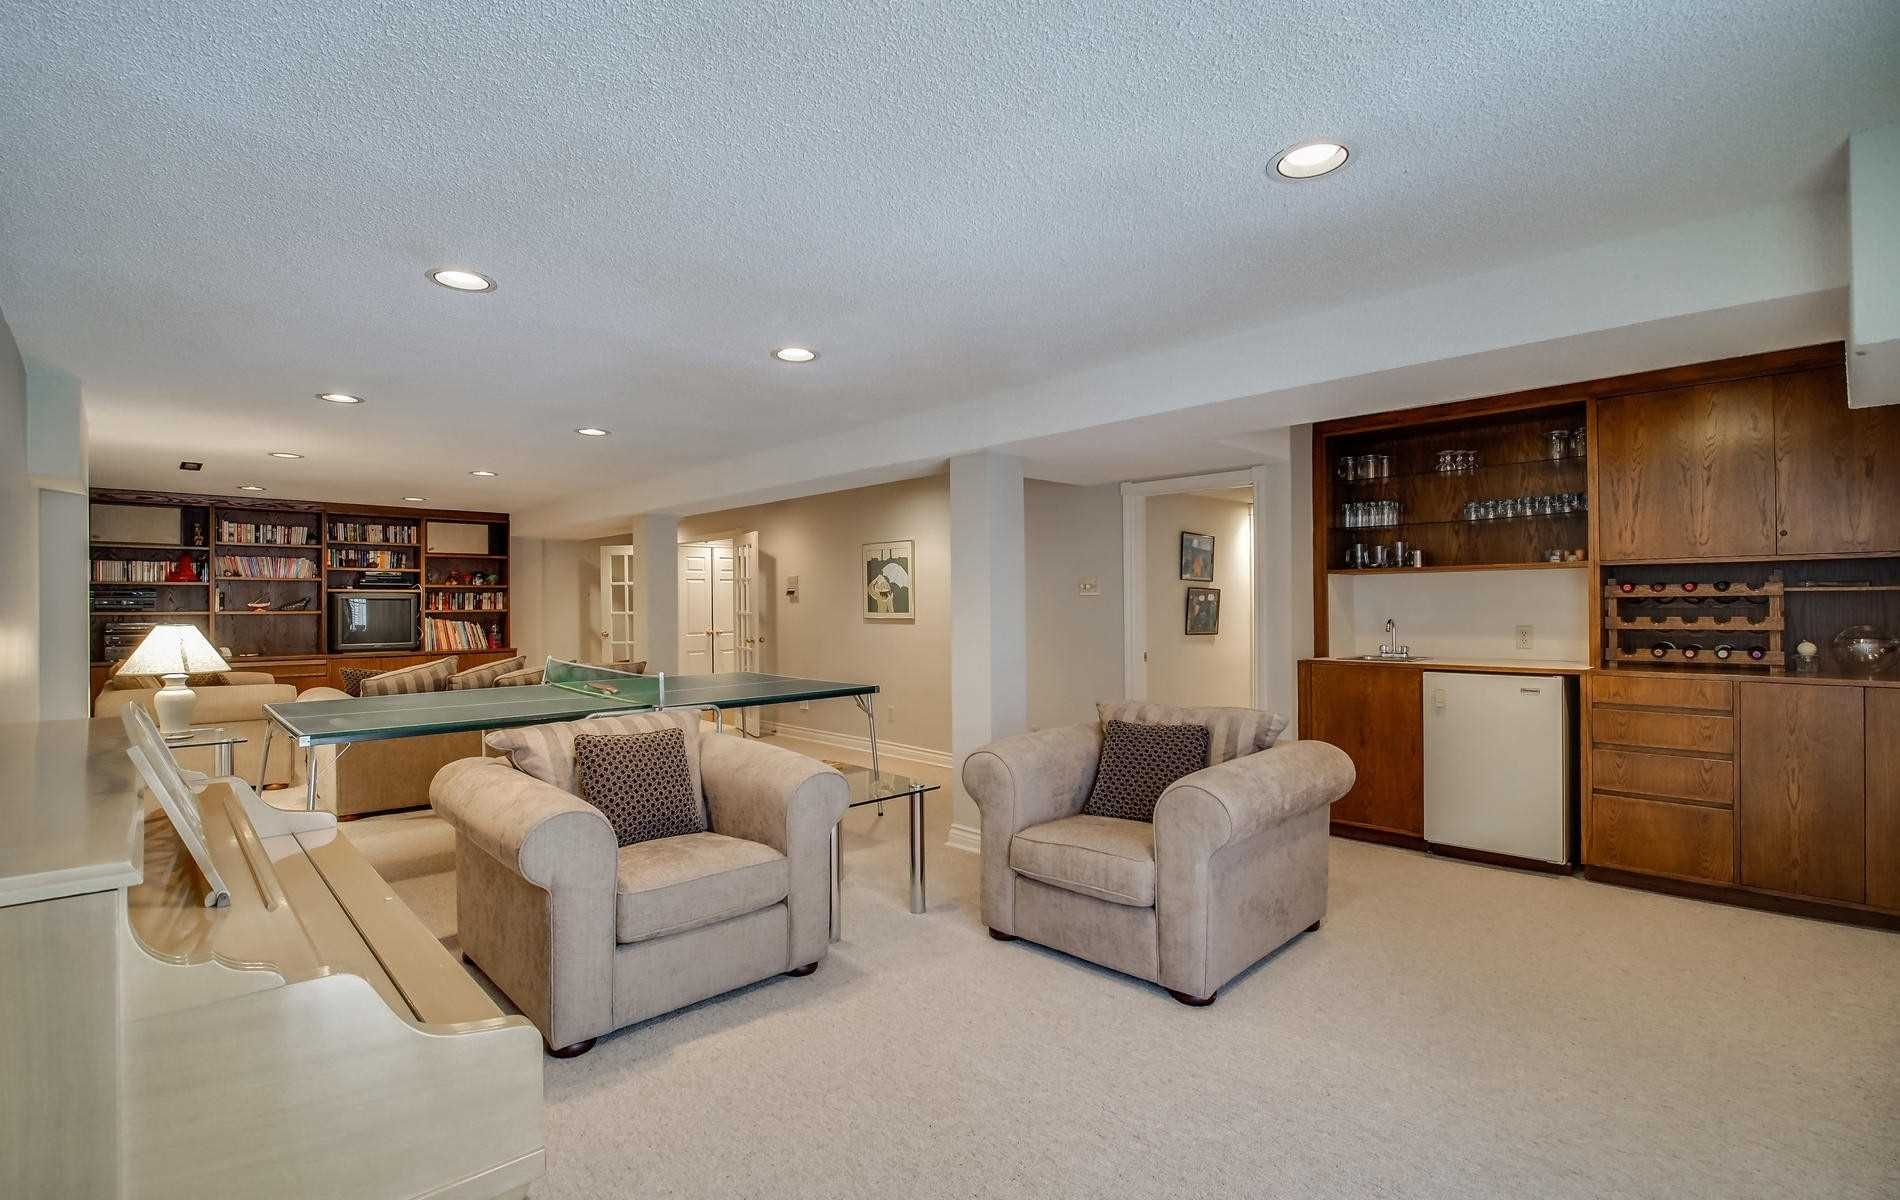 Photo 17: Photos: 498 Hidden Trail in Toronto: Westminster-Branson House (2-Storey) for sale (Toronto C07)  : MLS®# C4709173